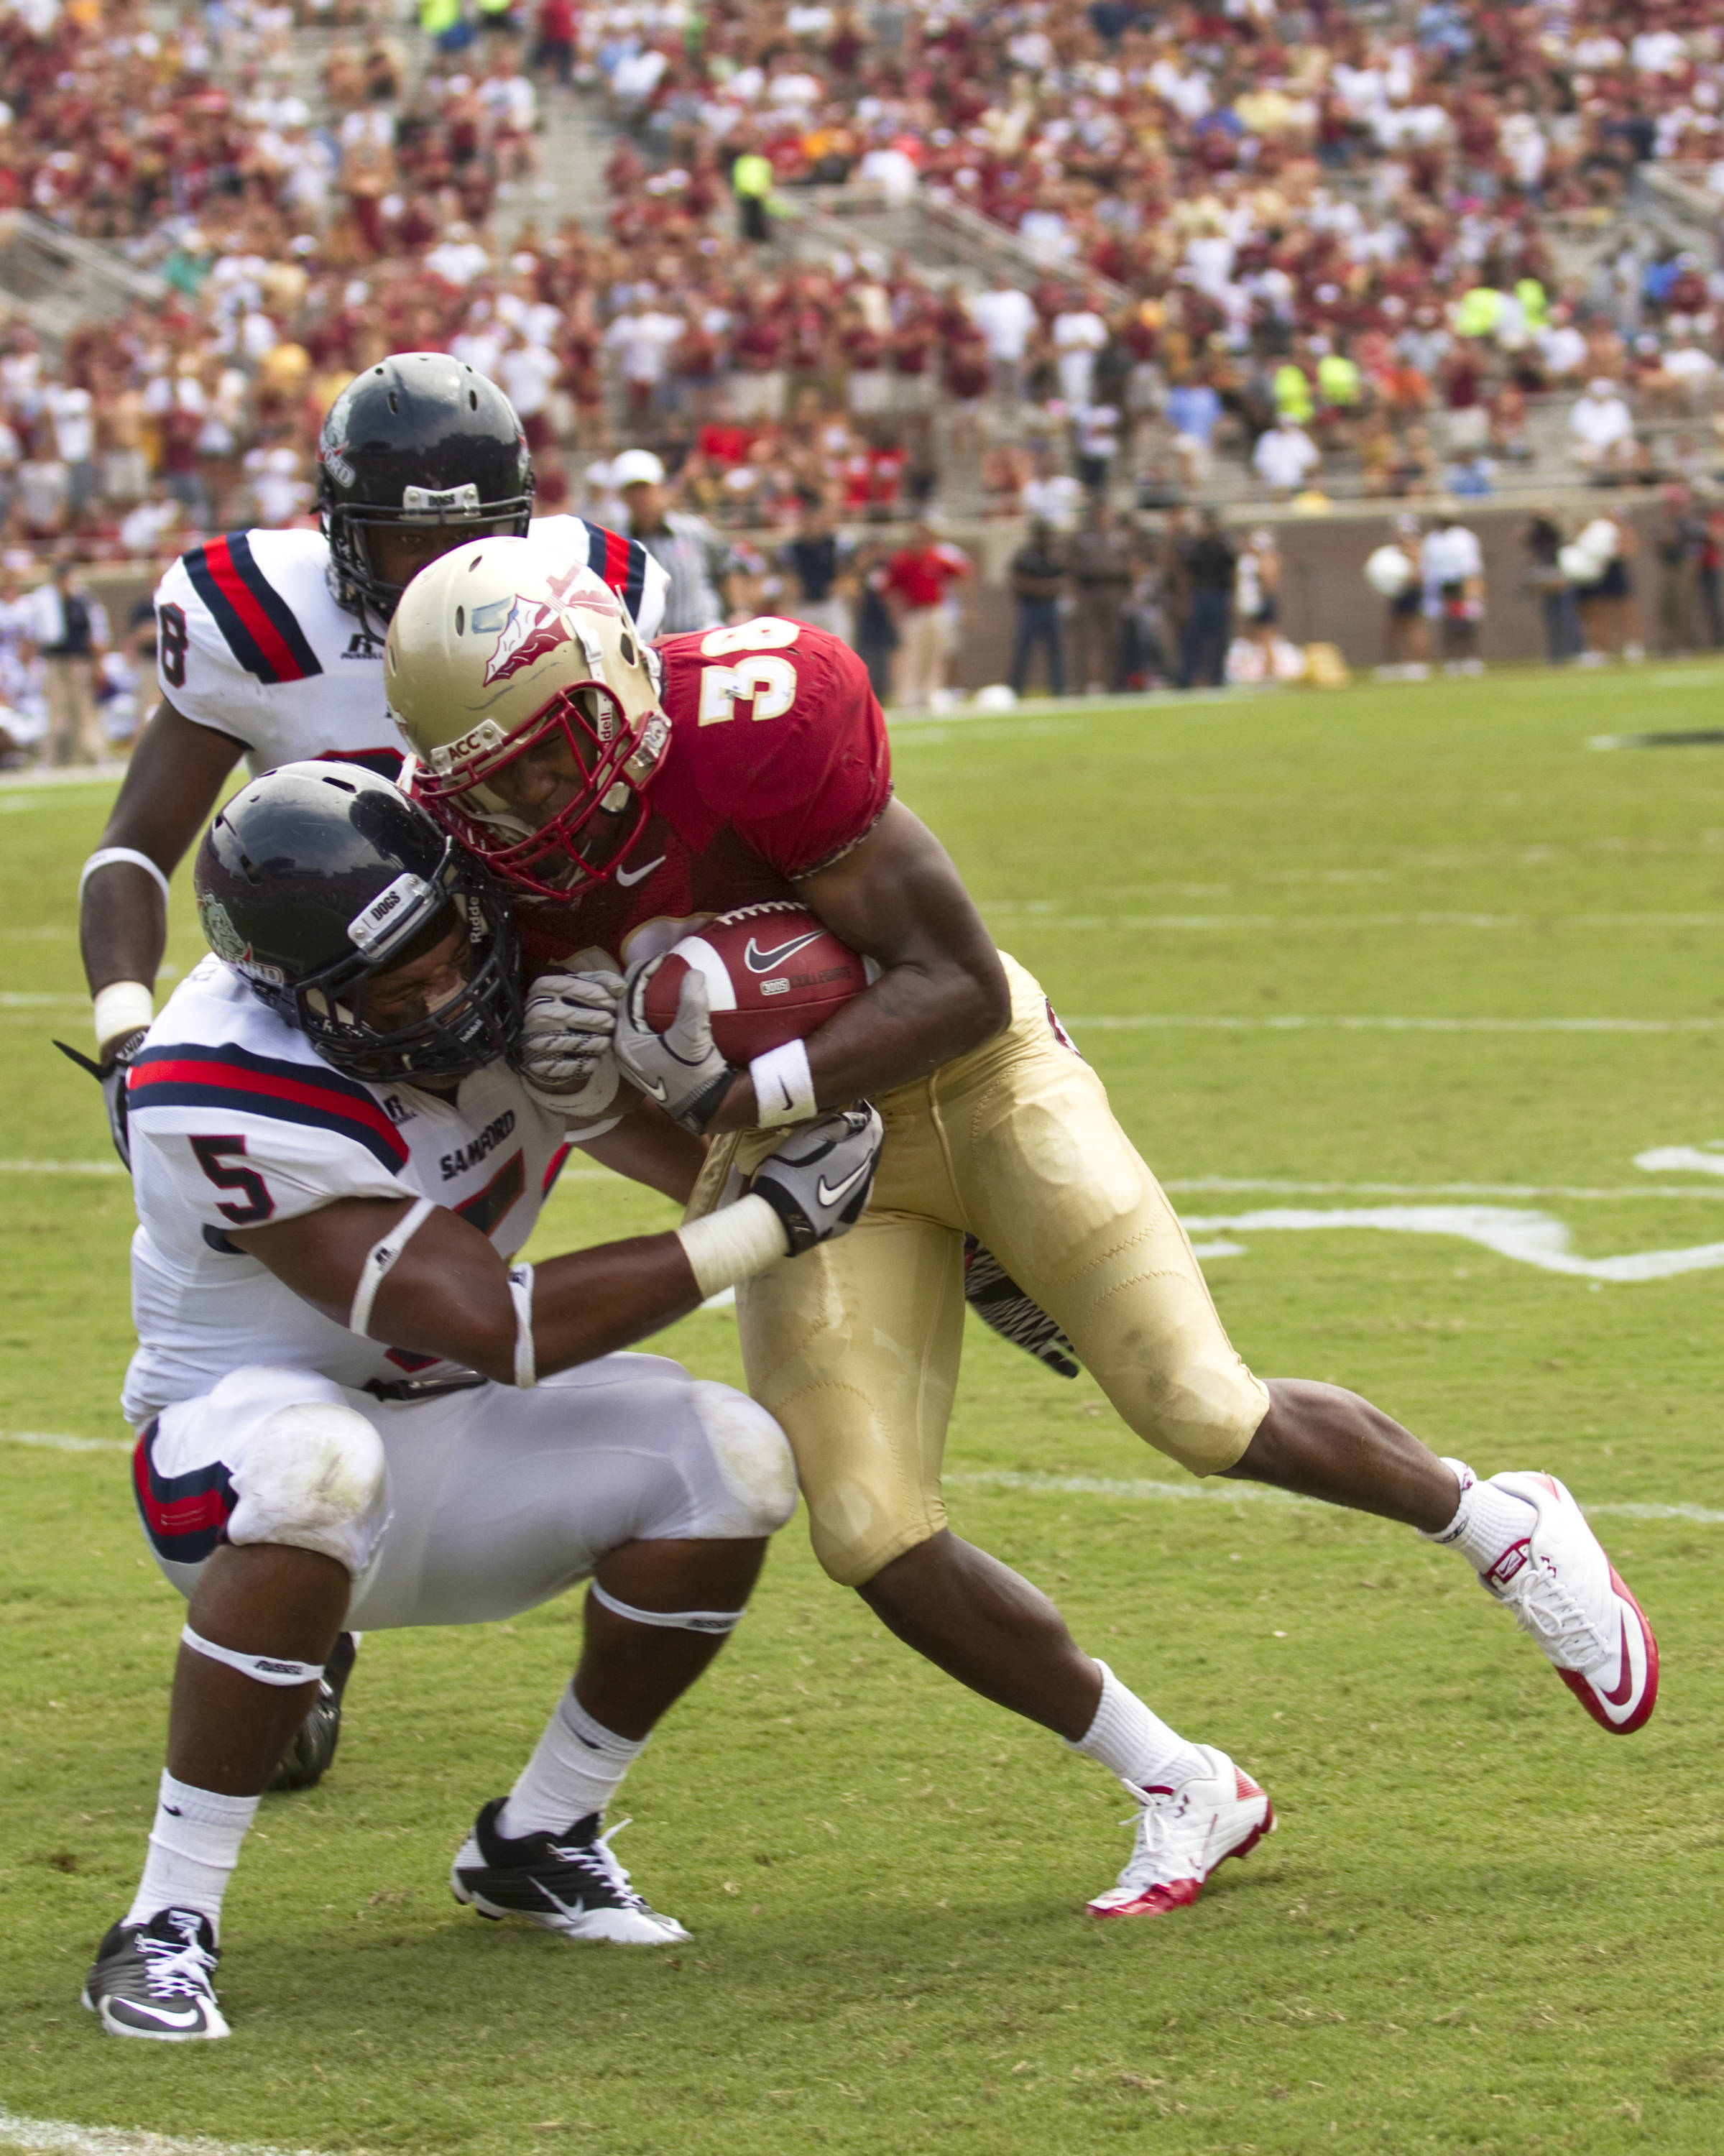 Darren Edwards (38) blocks a tackle from Samford's number 5.